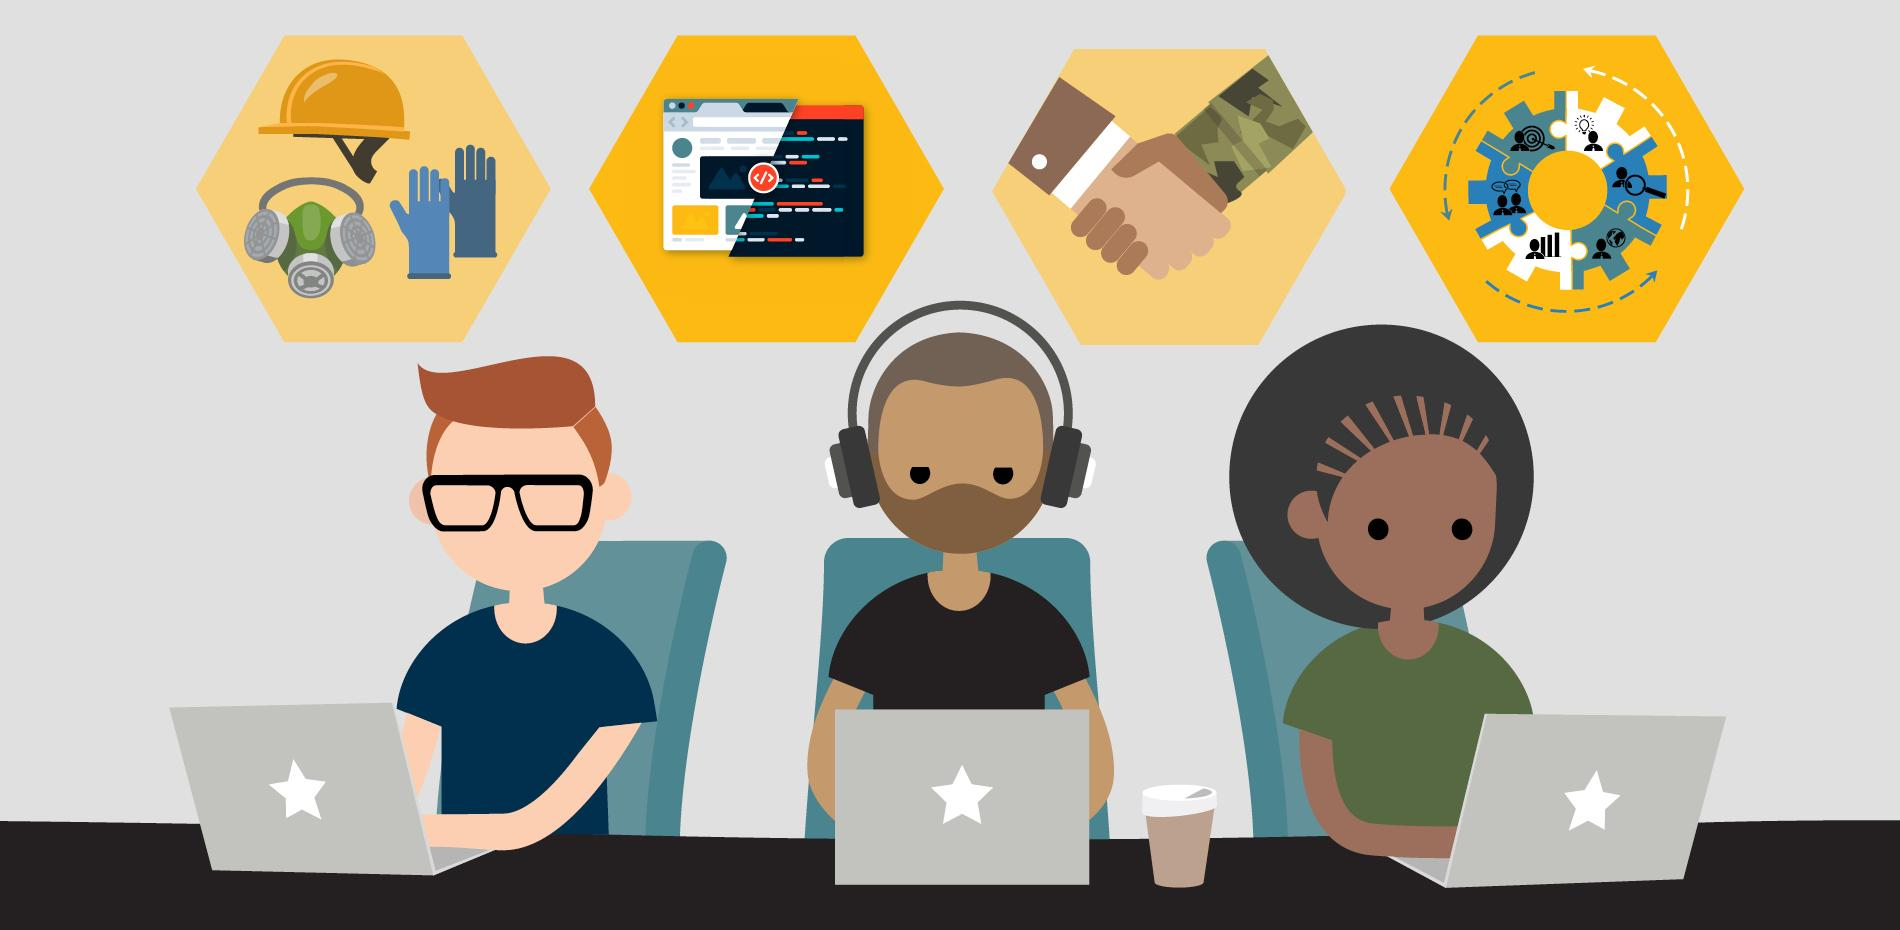 Three animated individuals of varying ethnicities and genders sit in front of laptop computers. Above them are graphics that represent OSHA, coding, veteran training, and project management.